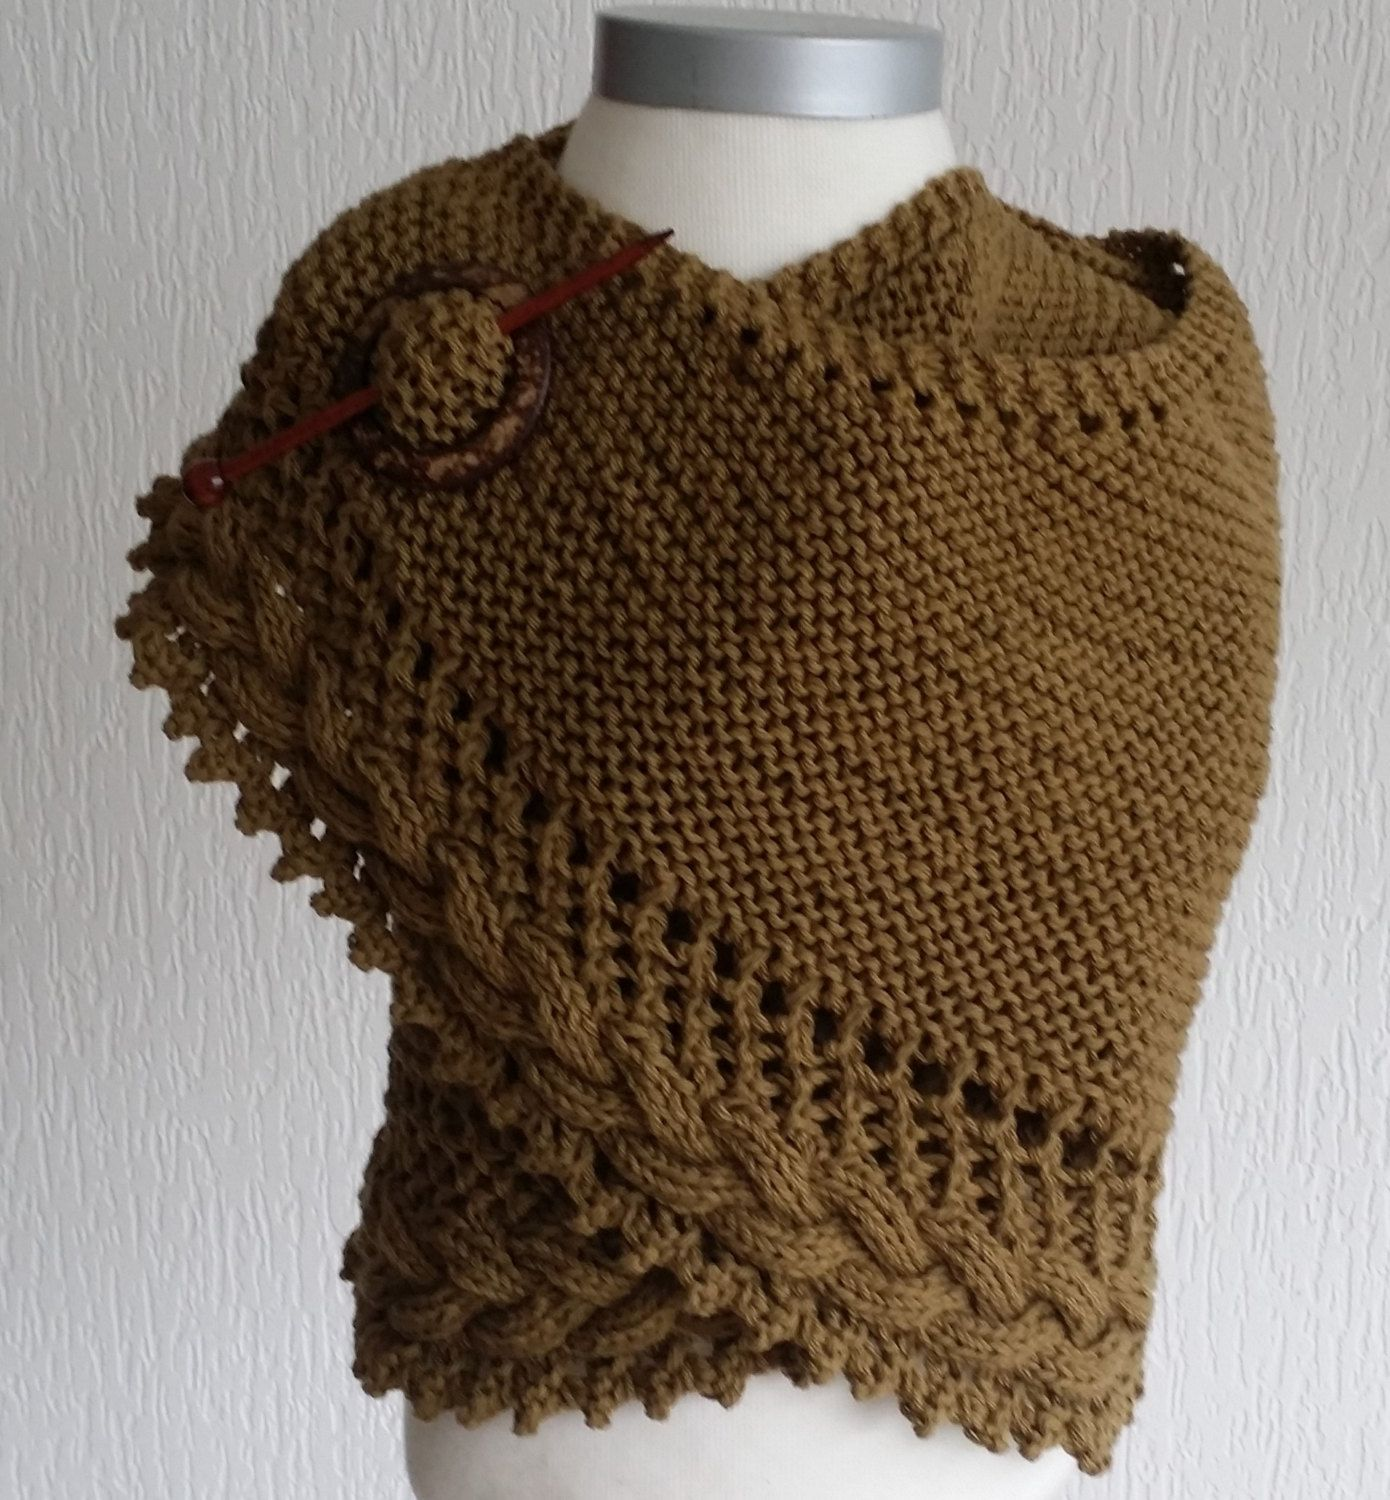 Cotton handknitted wrap / shawl / scarf by pinkvalleyNL on Etsy